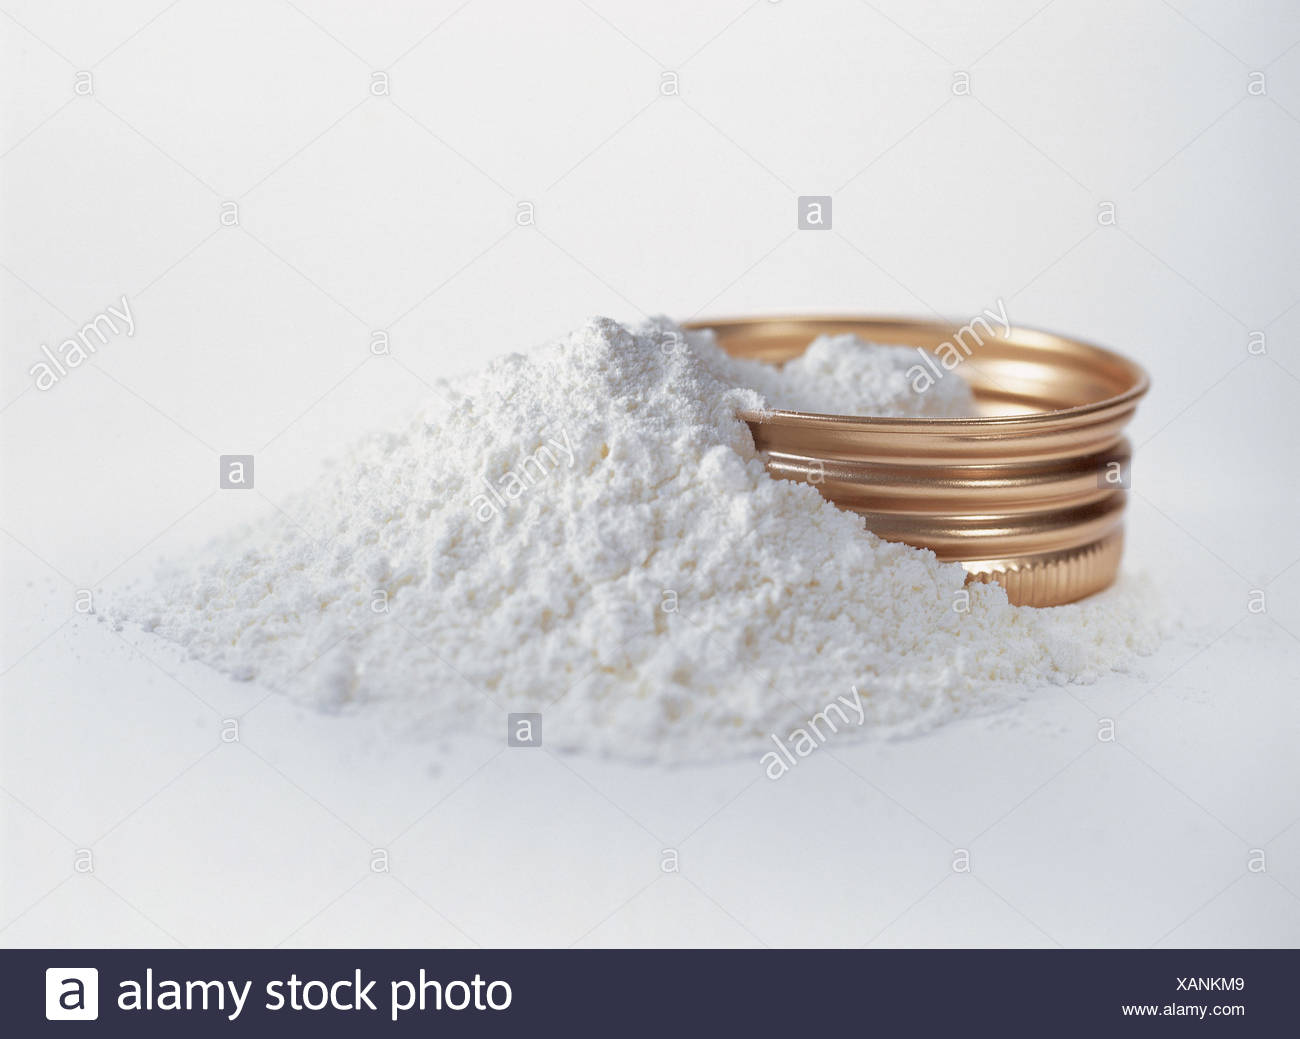 Cosmetics, screw top, talcum powder powder, powdery, talc powder, white, cosmetics, cosmetics articles, personal care, odour, shell care, care, care product, being in habit, lid, seal, screw cap, Still life, product photography, studio - Stock Image